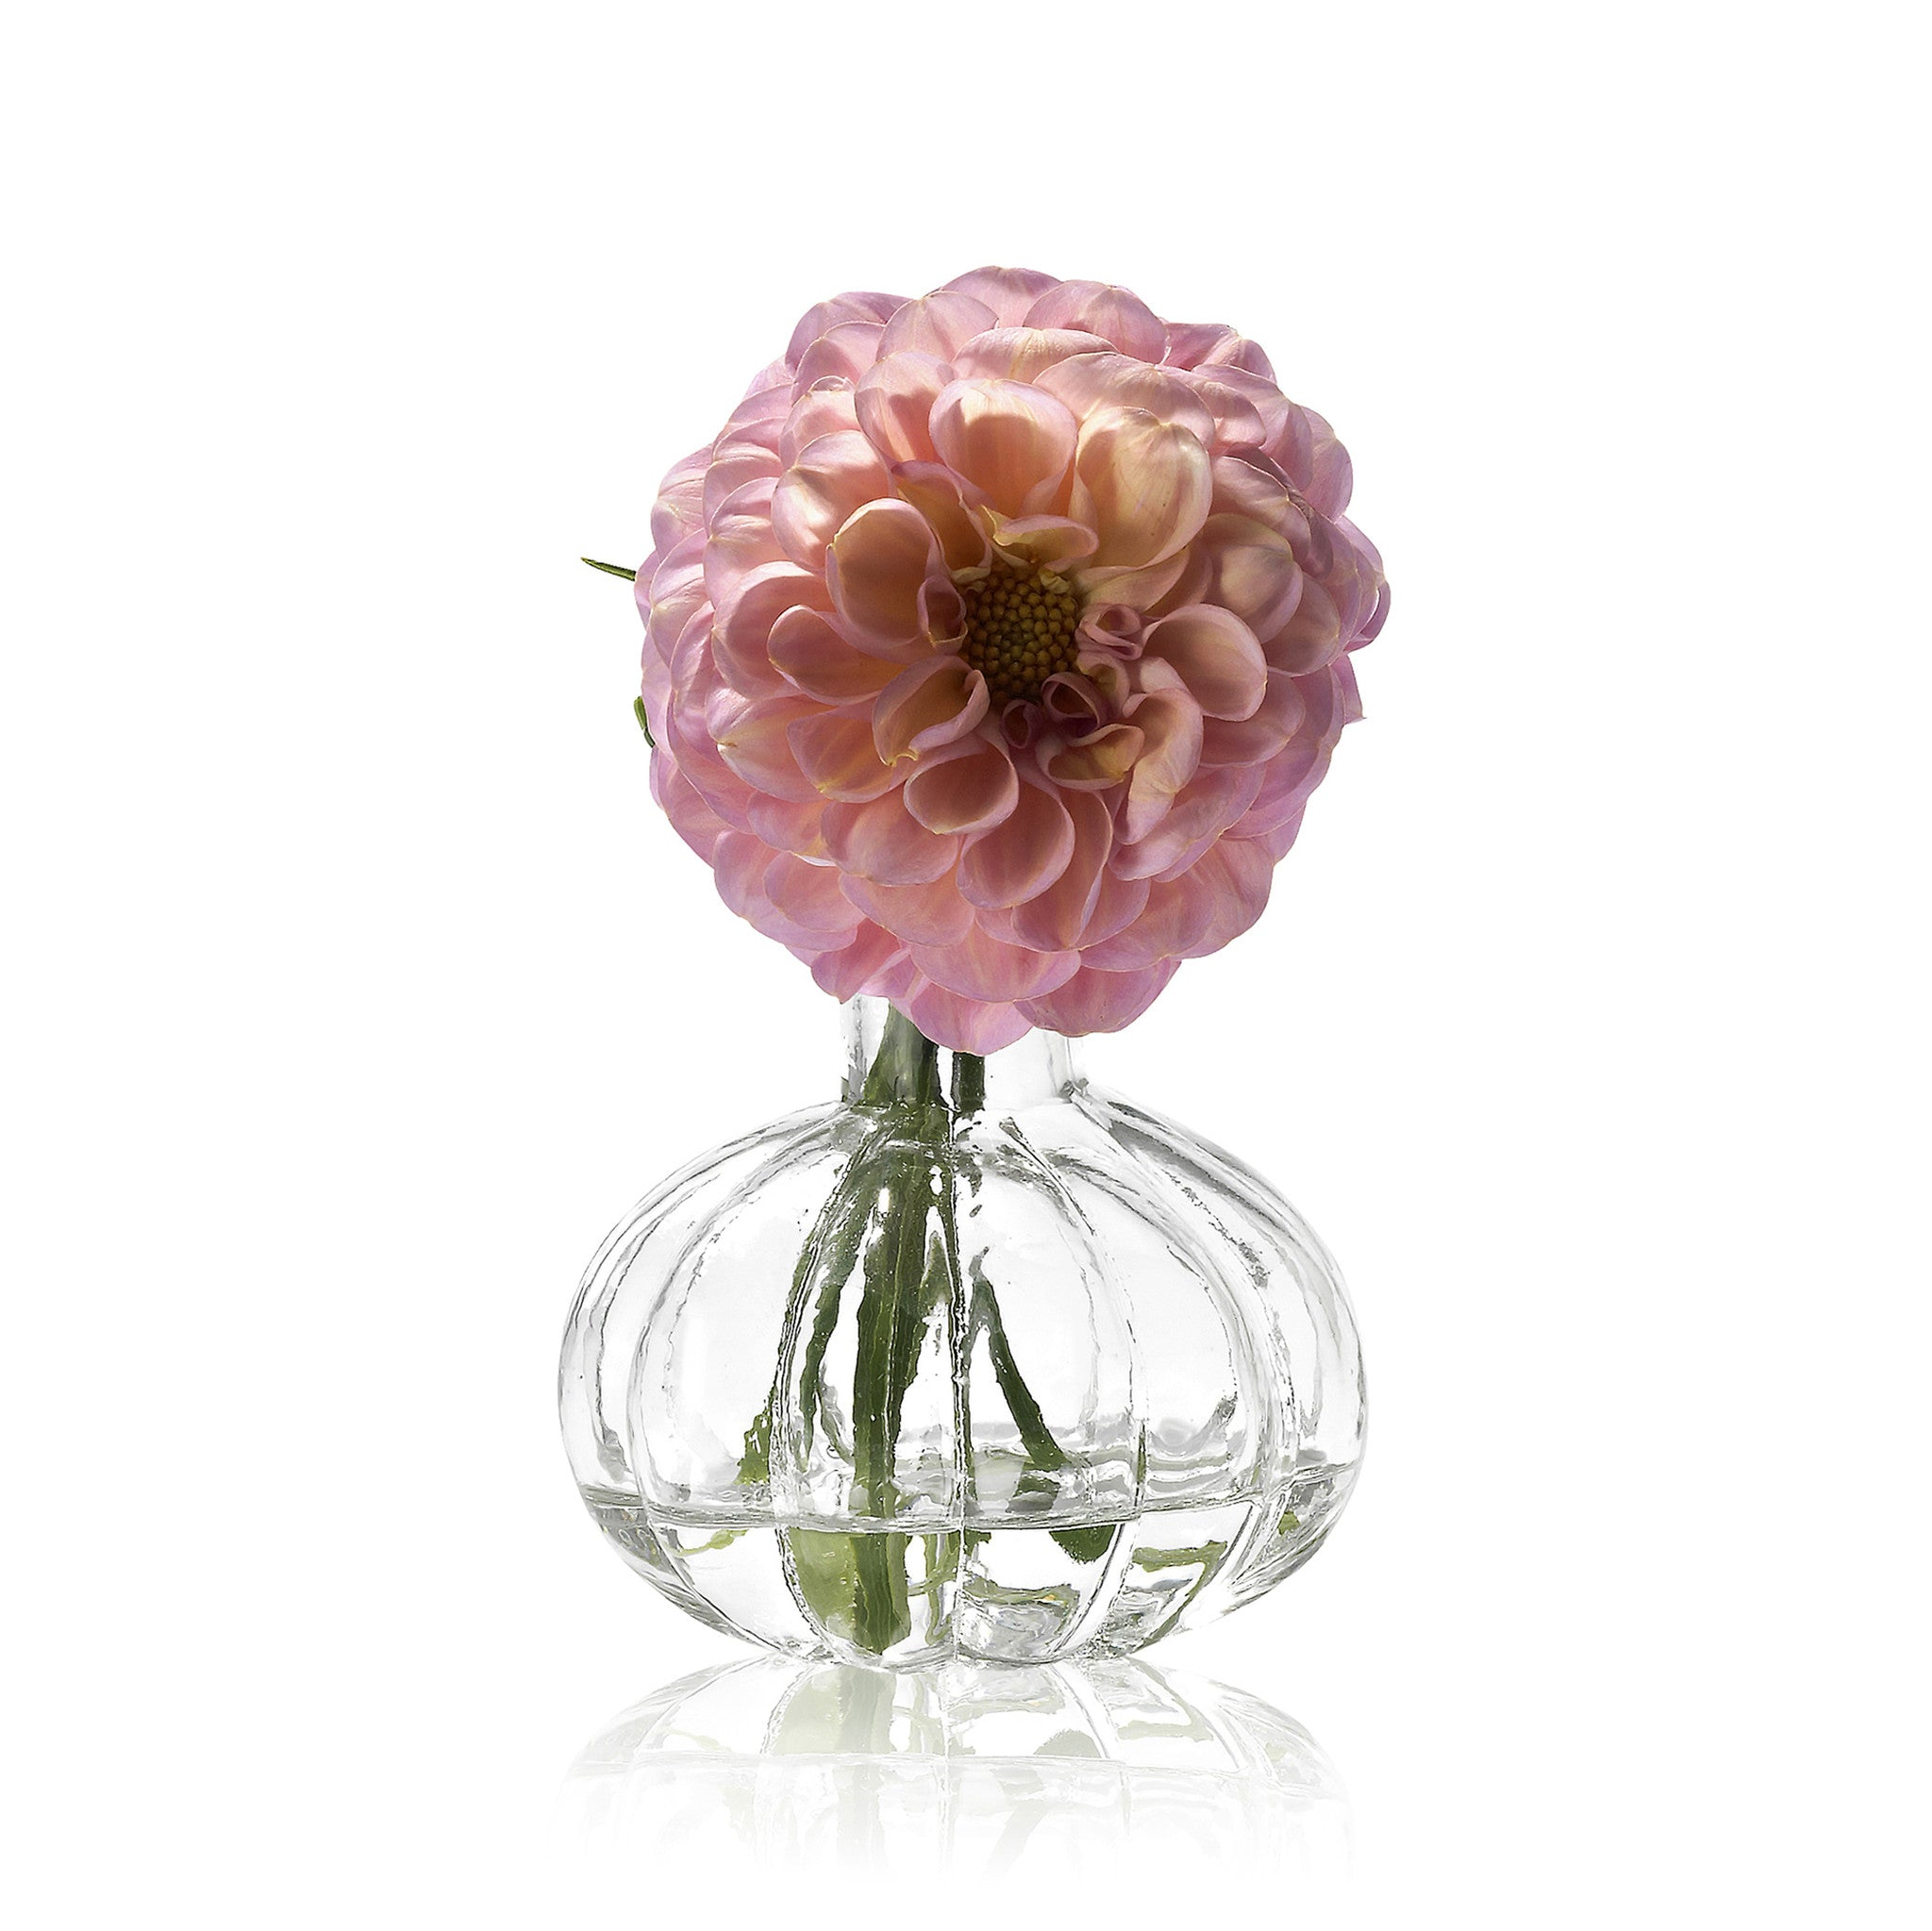 Glass Flower Vase - Marianne